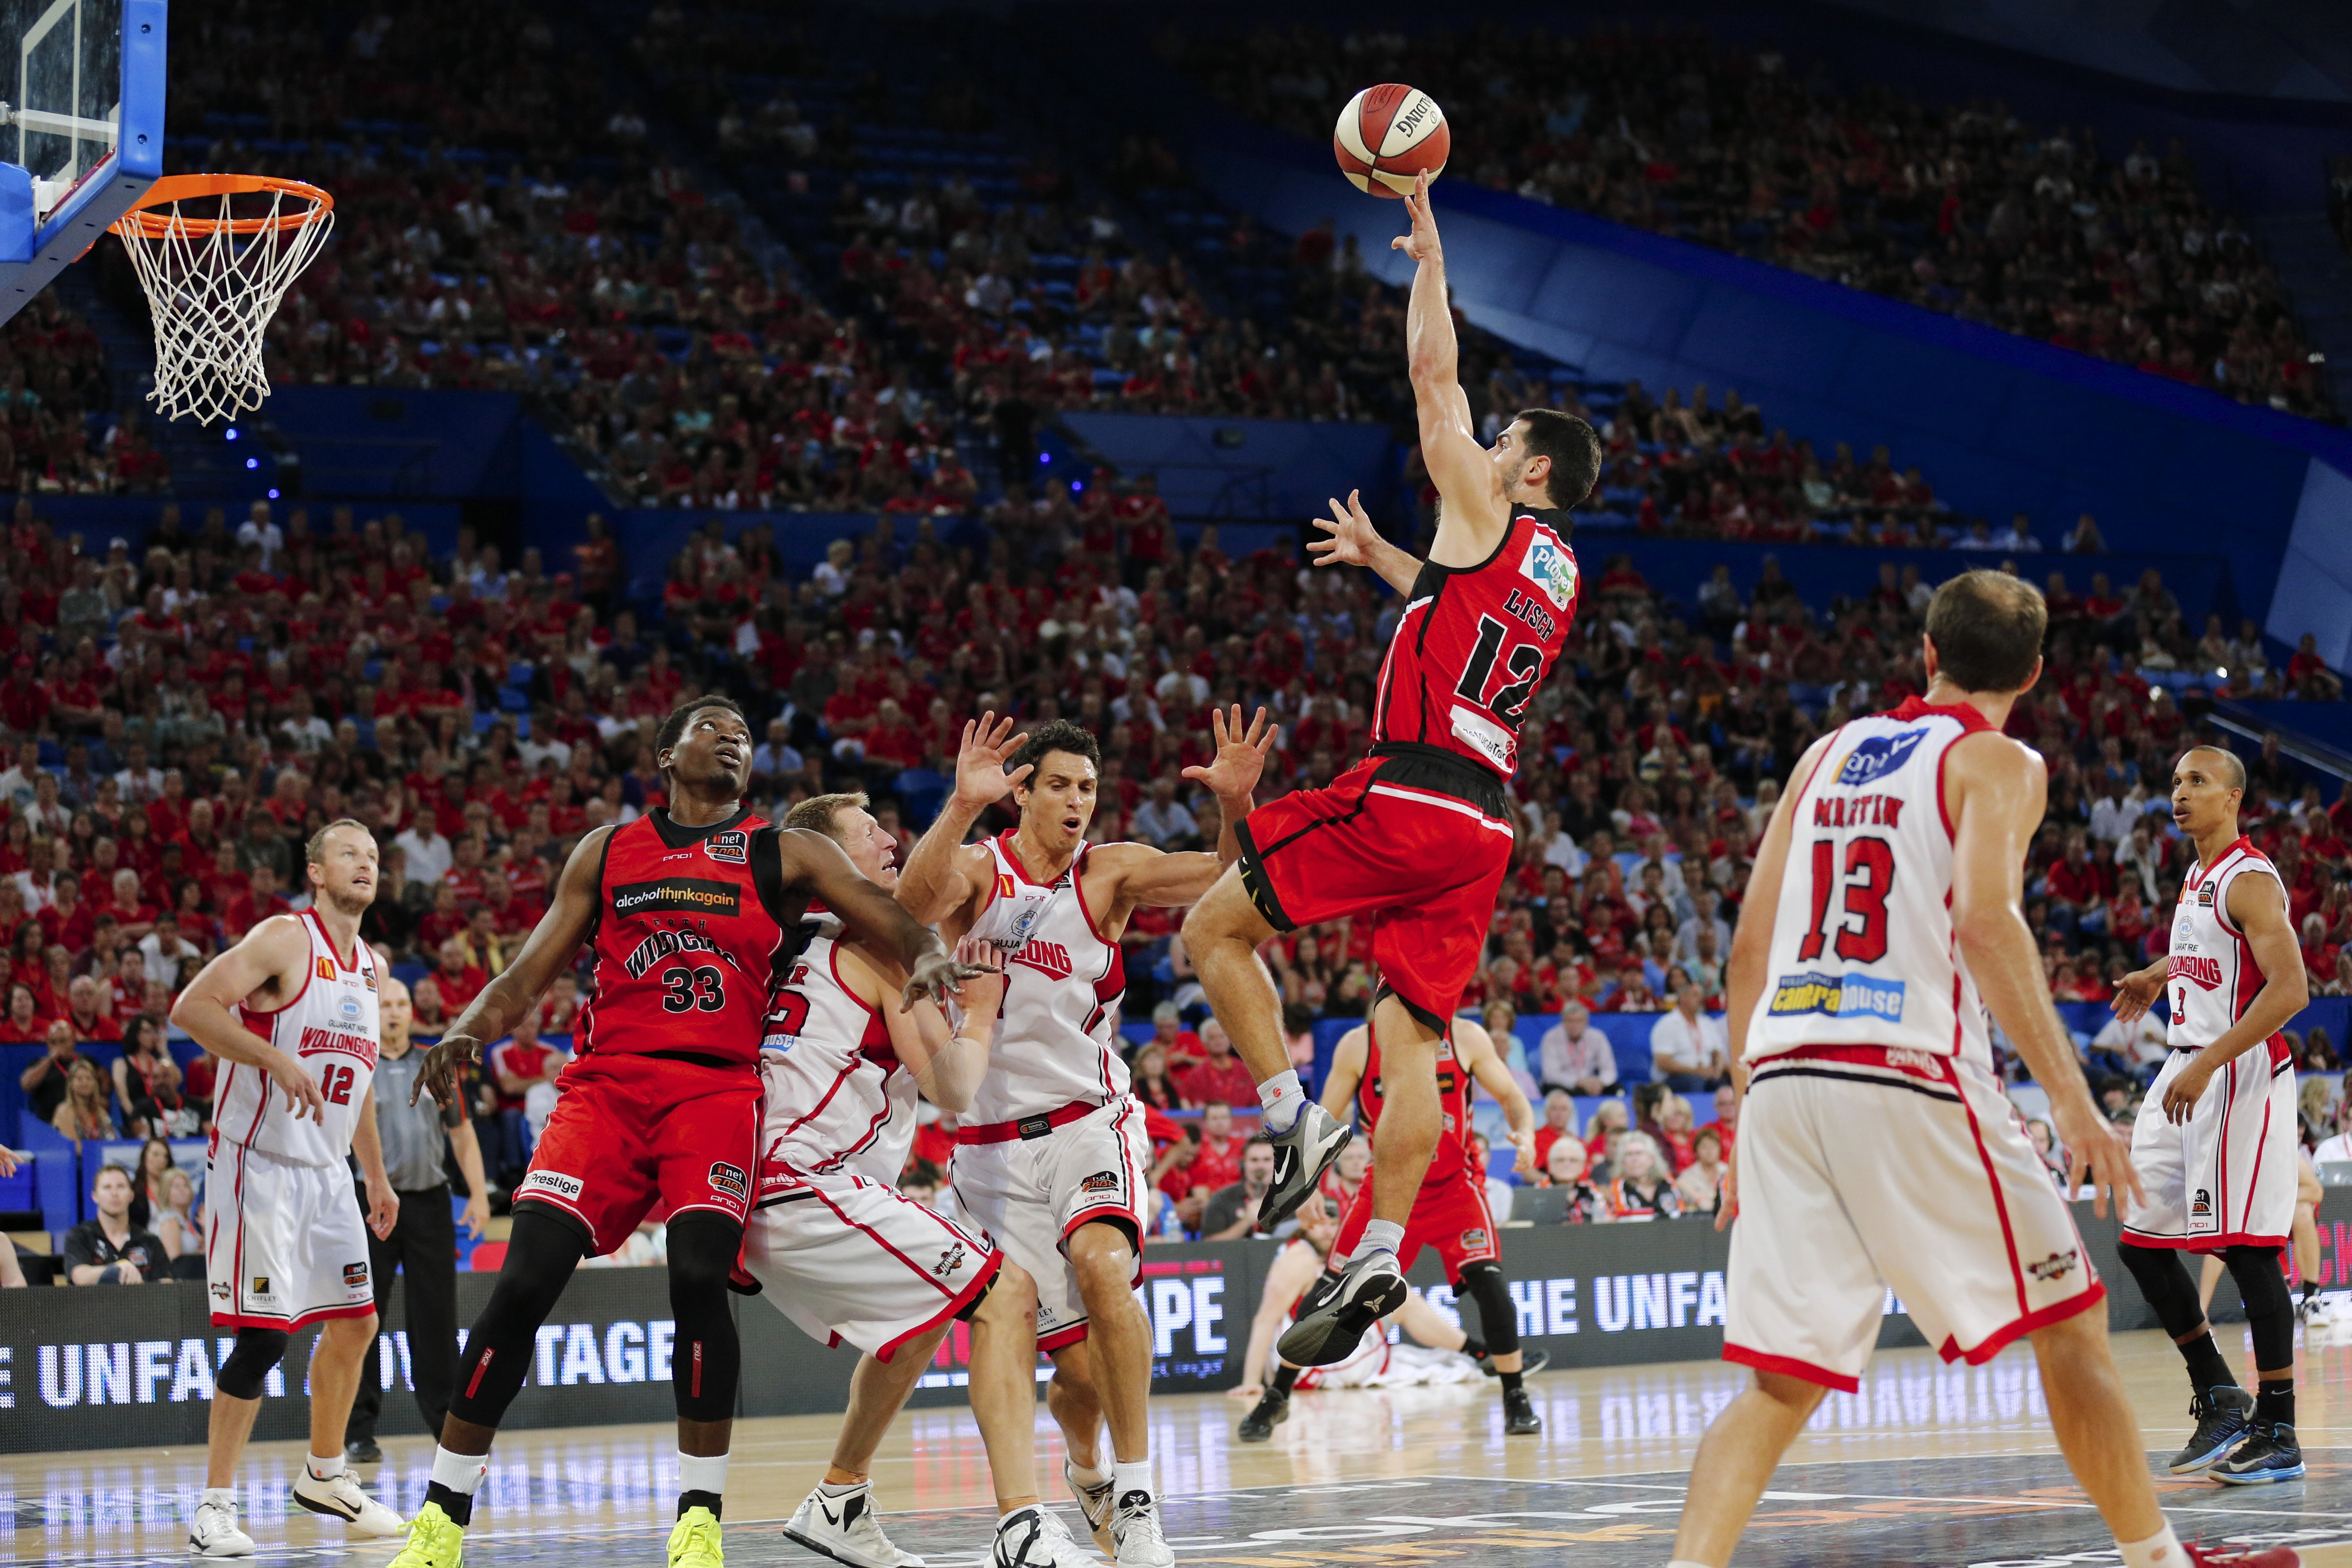 Perth Wildcats NBL Games - Perth